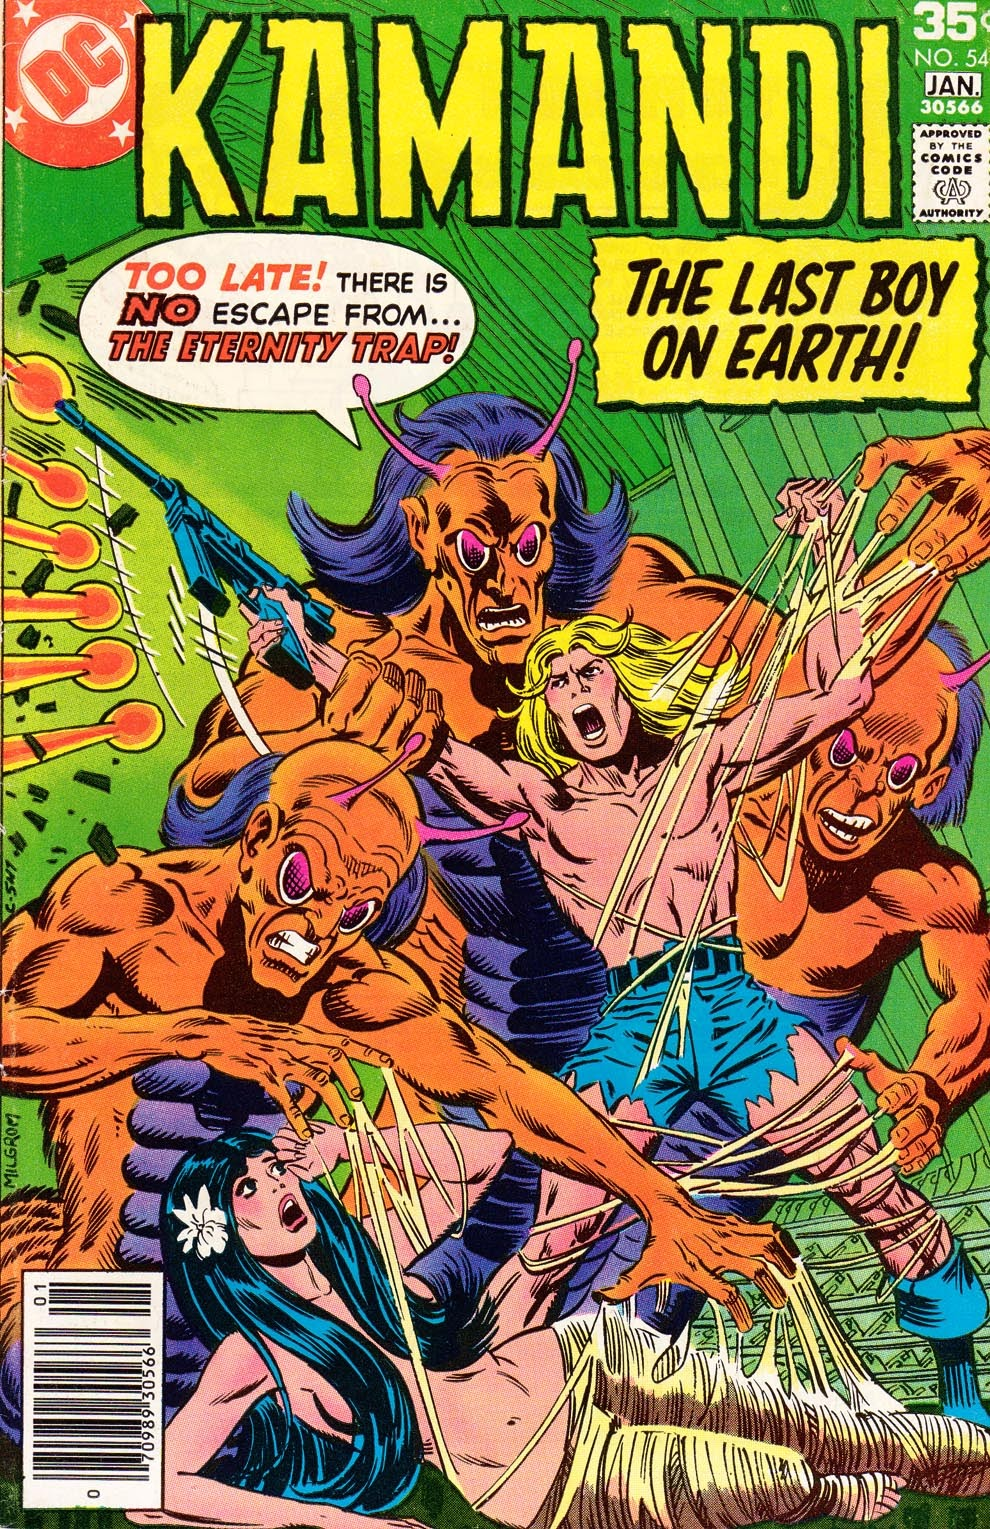 Kamandi, The Last Boy On Earth issue 54 - Page 1